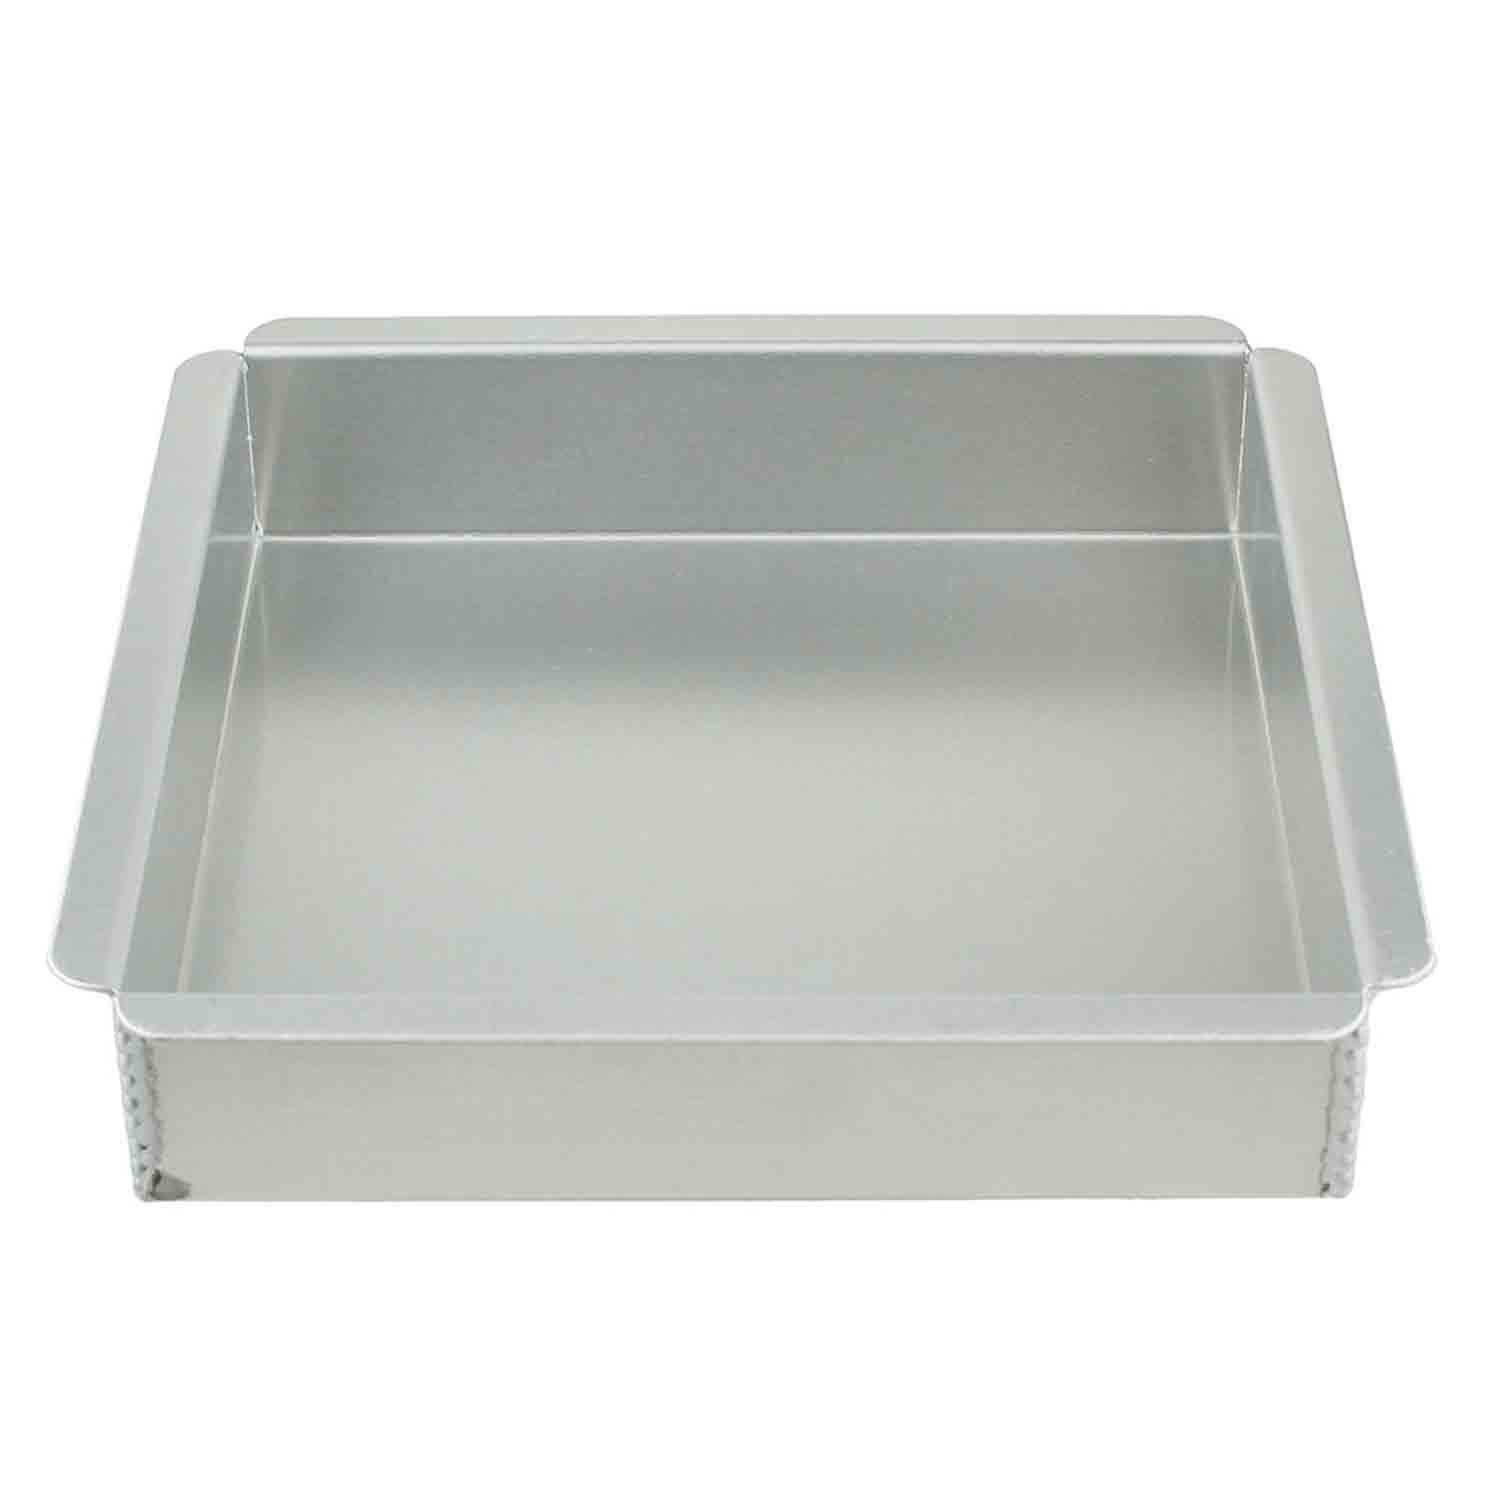 "10 x 2"" Magic Line Square Cake Pan"